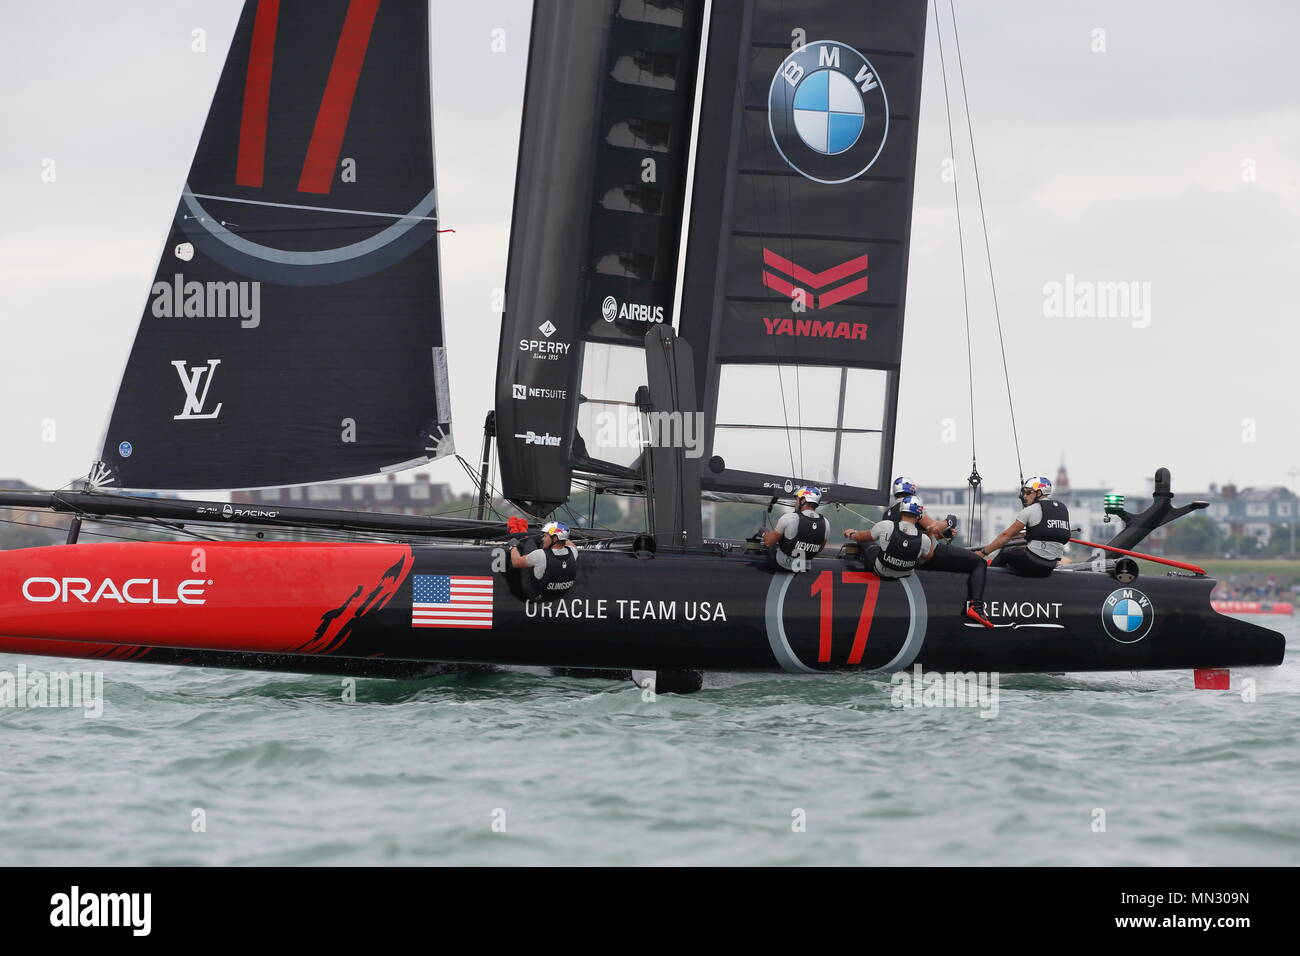 PORTSMOUTH, ENGLAND - JULY 24: The Oracle team USA yacht in race trim on July 24, 2016 in Portsmouth, England. - Stock Image